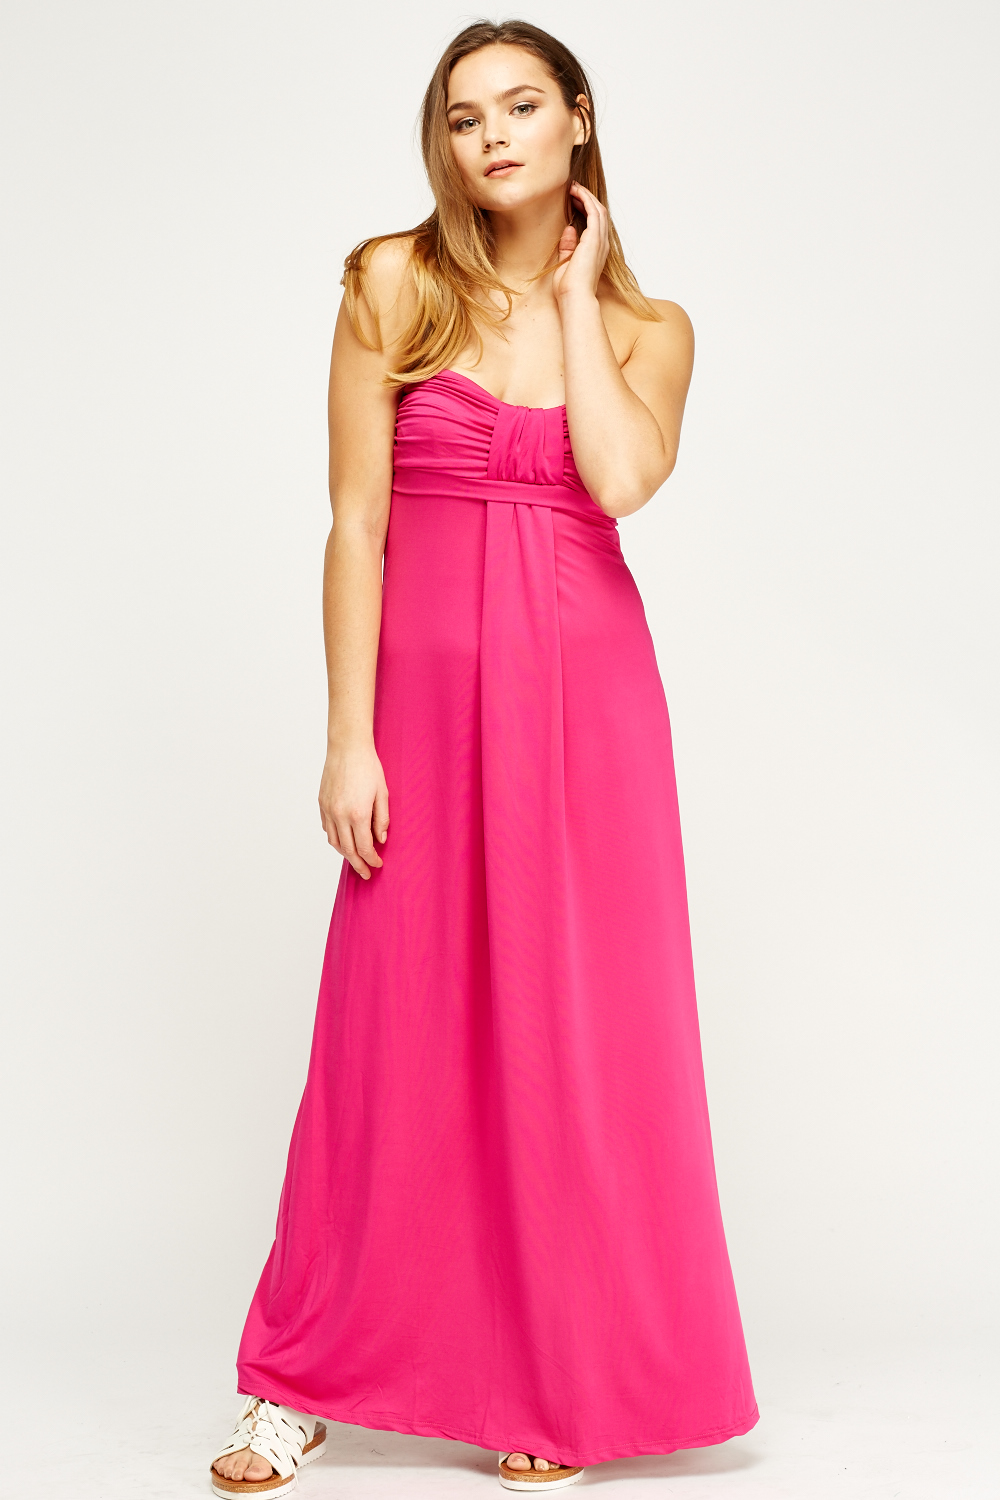 Find great deals on eBay for basic dress. Shop with confidence.